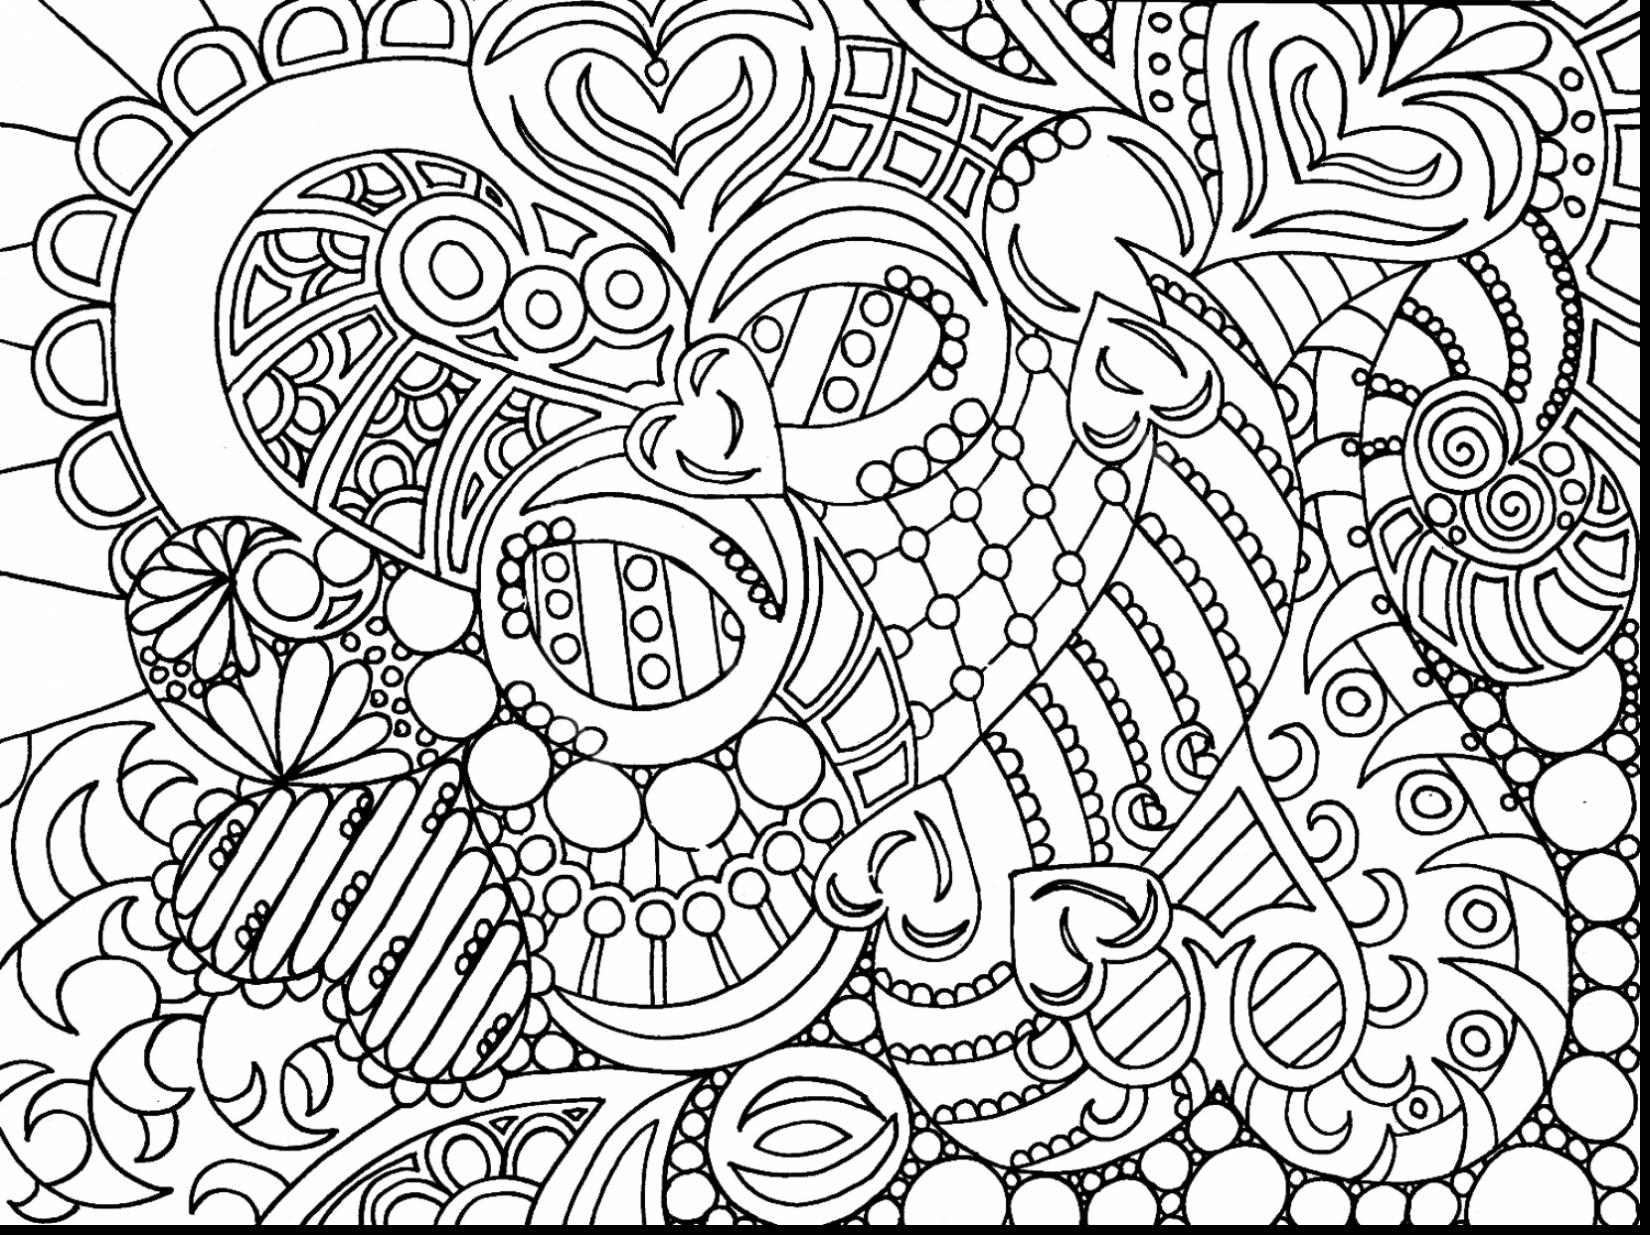 tween coloring pages tween fashion coloring pages cute designs to color and sew tween coloring pages